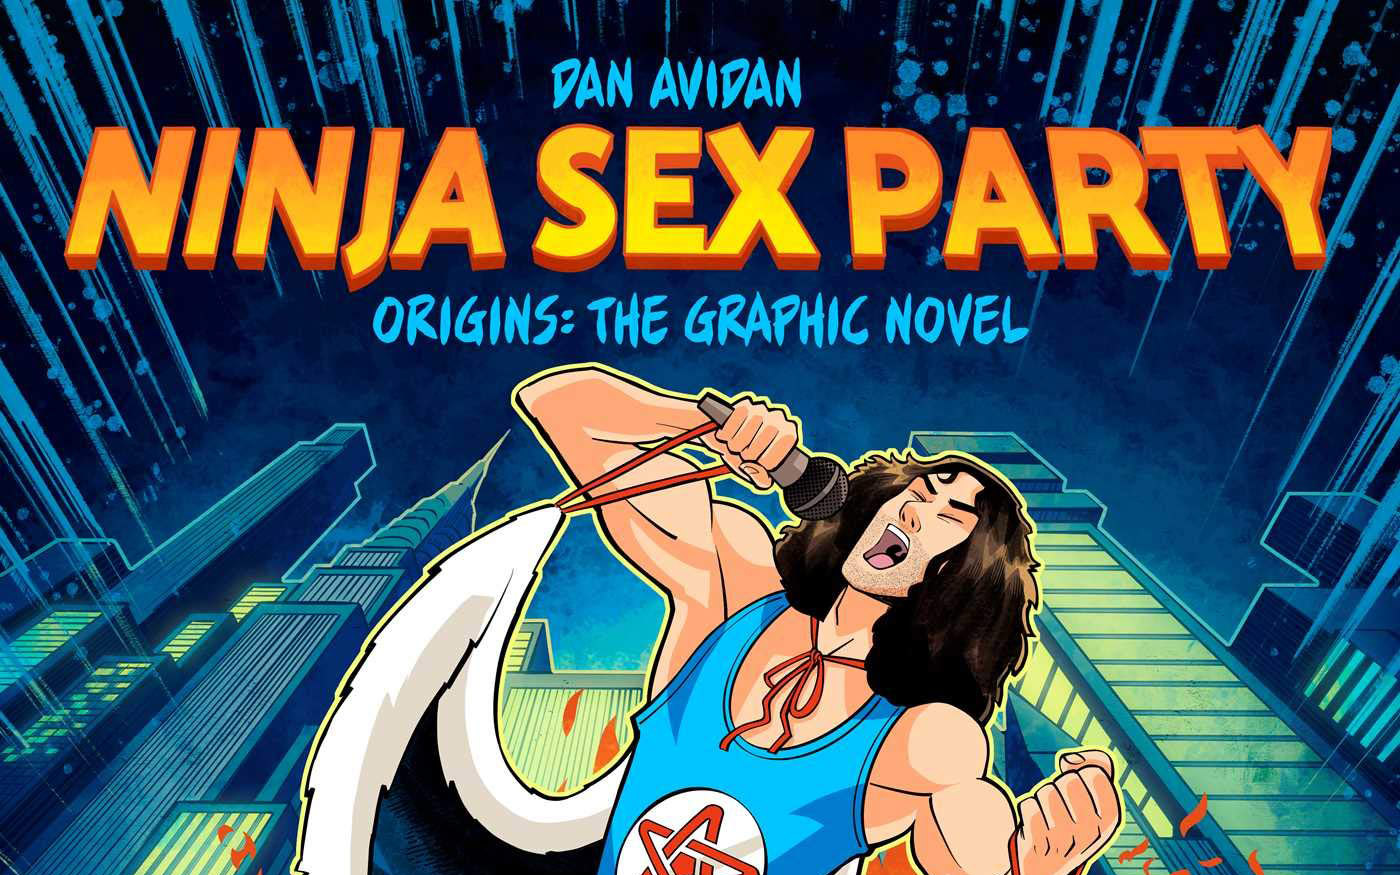 BOOK REVIEW: Ninja Sex Party Origins: The Graphic Novel